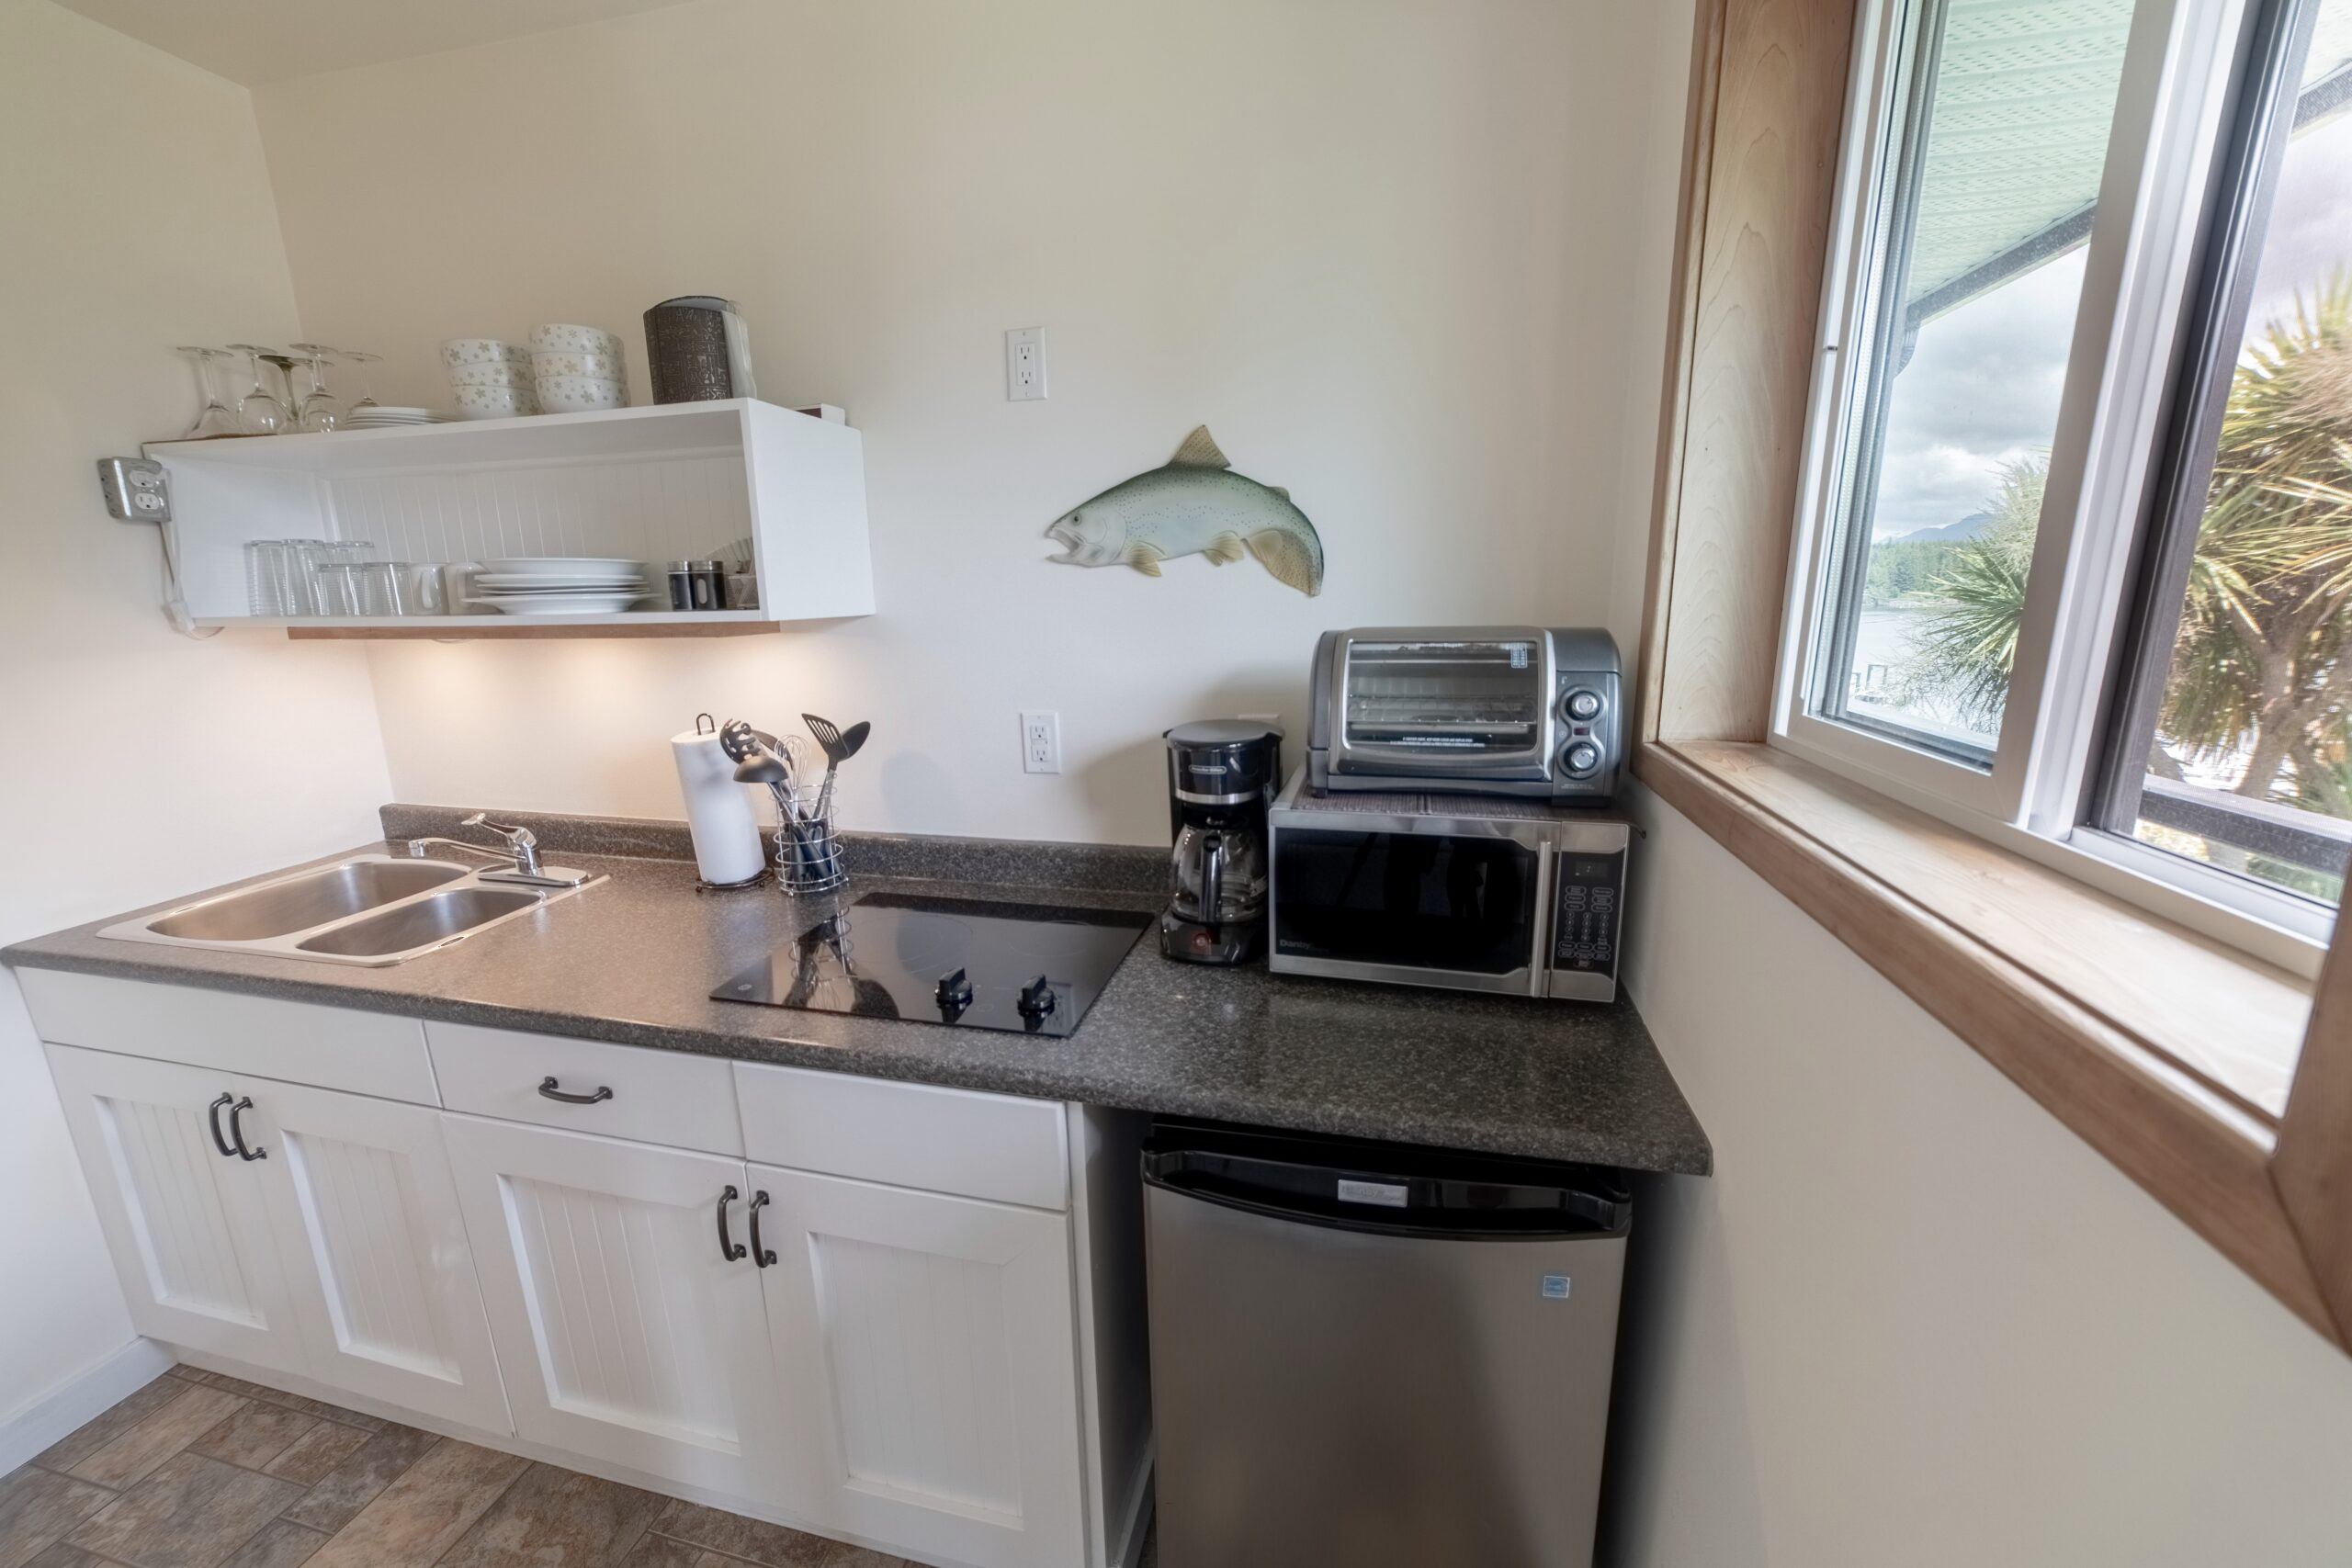 Ocean Inlet View Kitchenette Suite